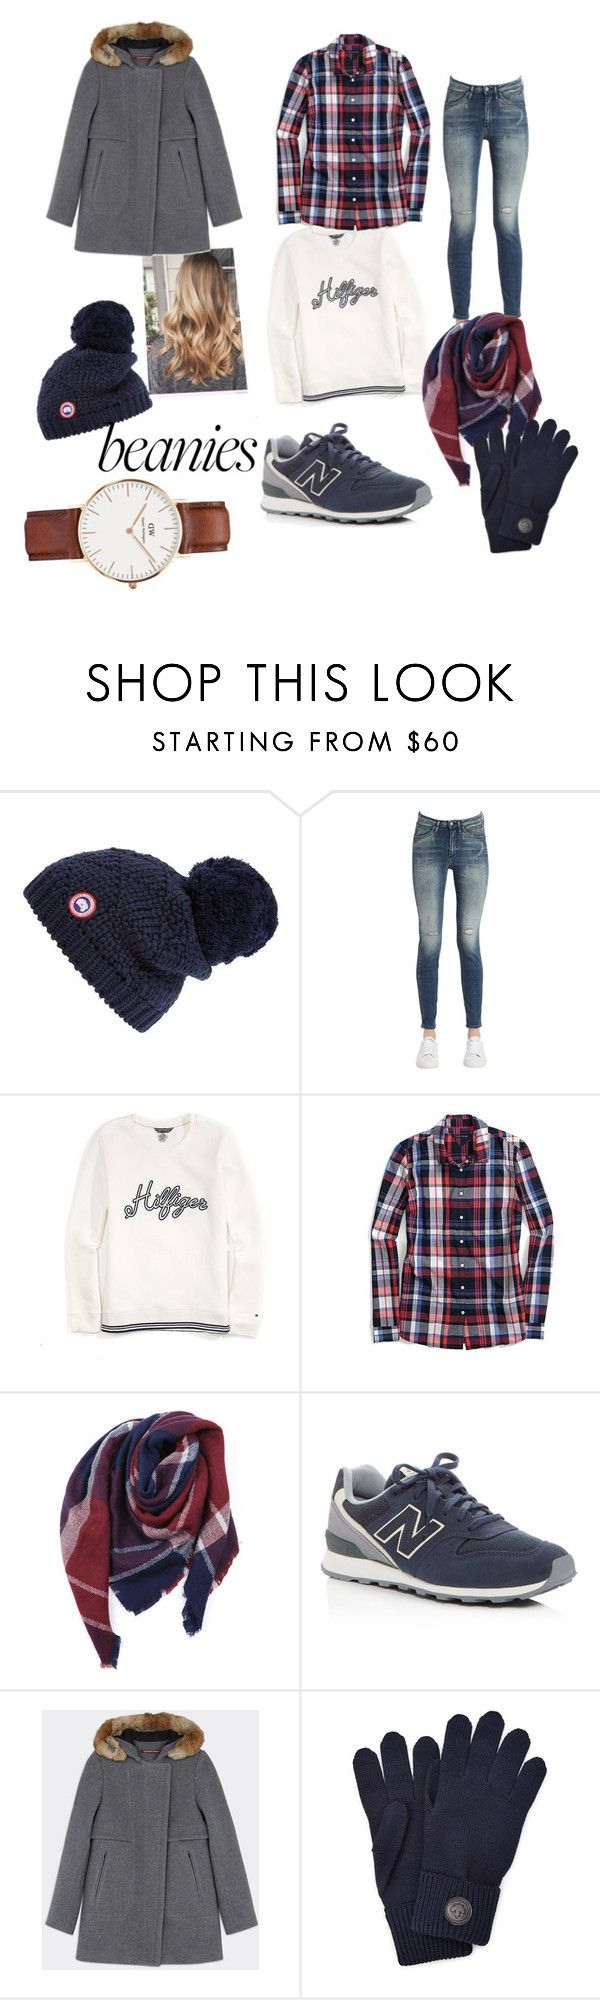 """Untitled #38"" by giorgiatonelli ❤ liked on Polyvore featuring Canada Goose, Calvin Klein Jeans, Tommy Hilfiger, Everest, New Balance, Dsquared2 and Daniel Wellington"